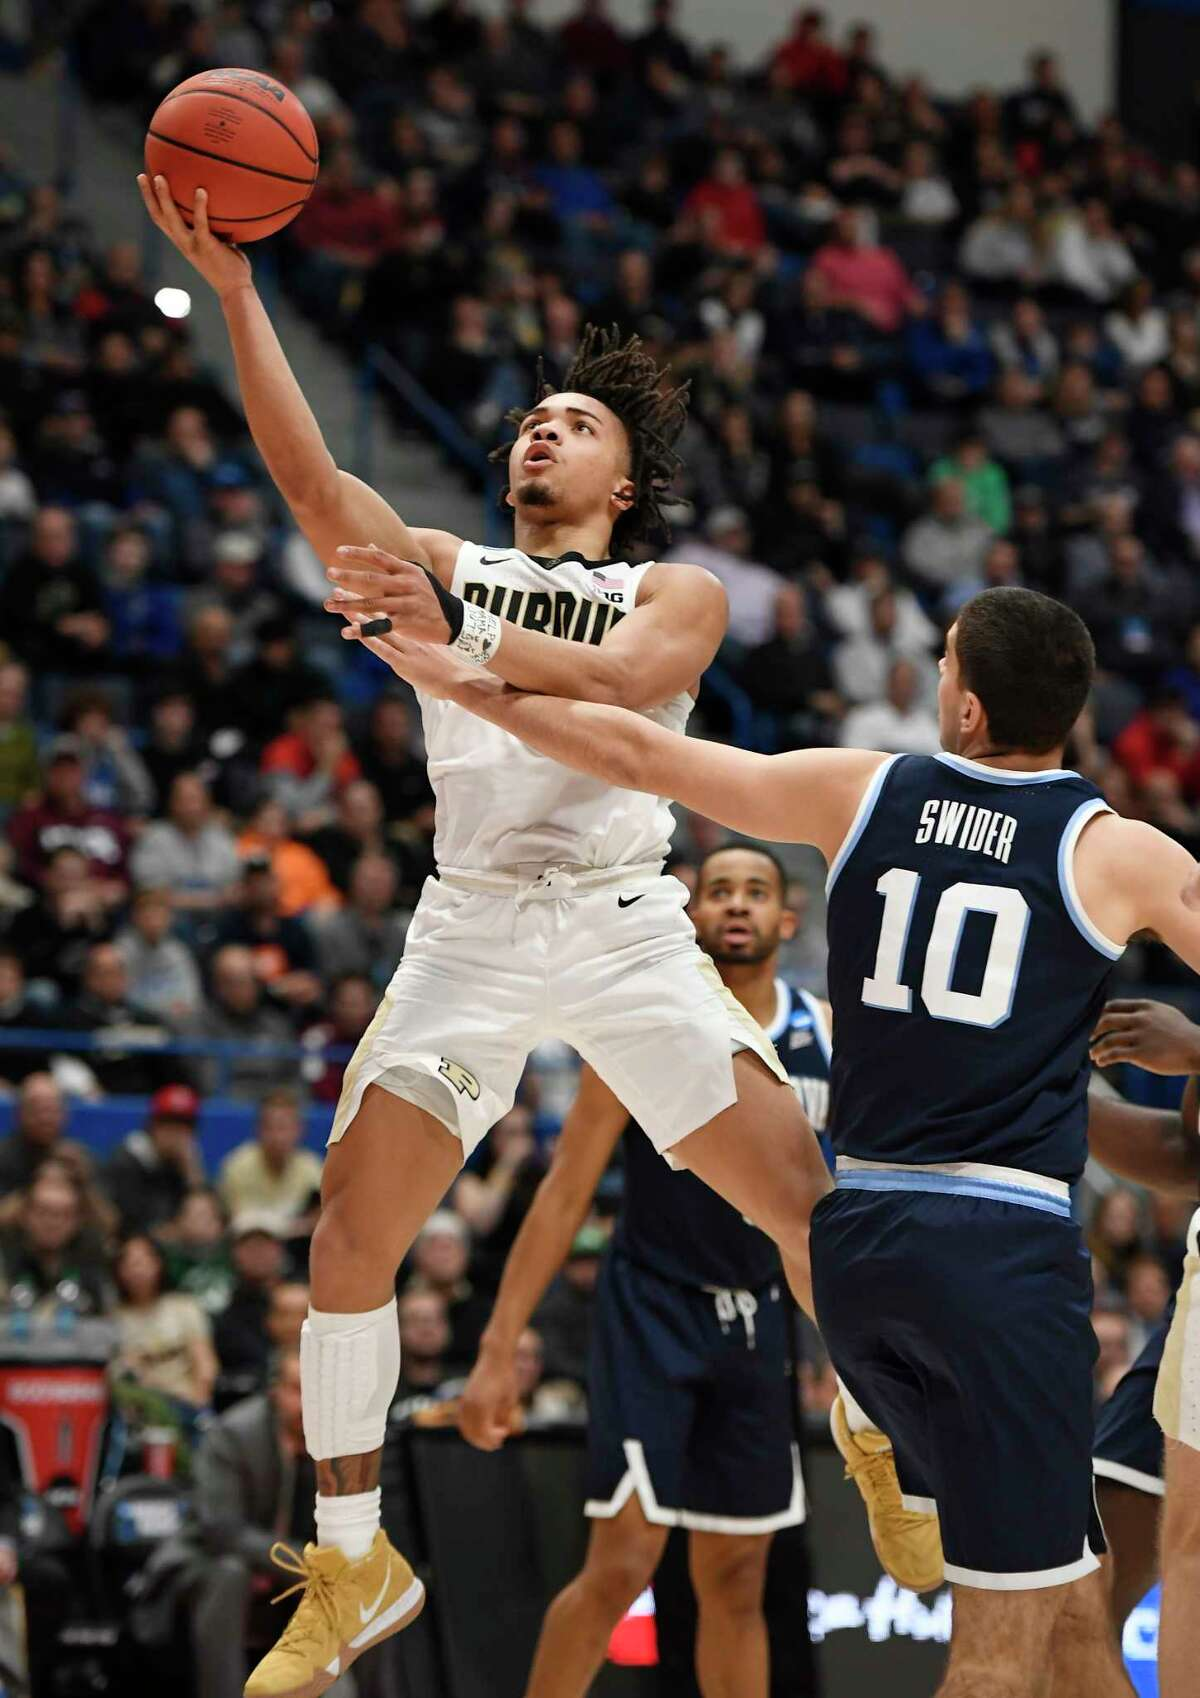 Purdue's Carsen Edwards (3) is fouled by Villanova's Cole Swider (10) during the second half of a second round men's college basketball game in the NCAA tournament, Saturday, March 23, 2019, in Hartford, Conn. (AP Photo/Jessica Hill)